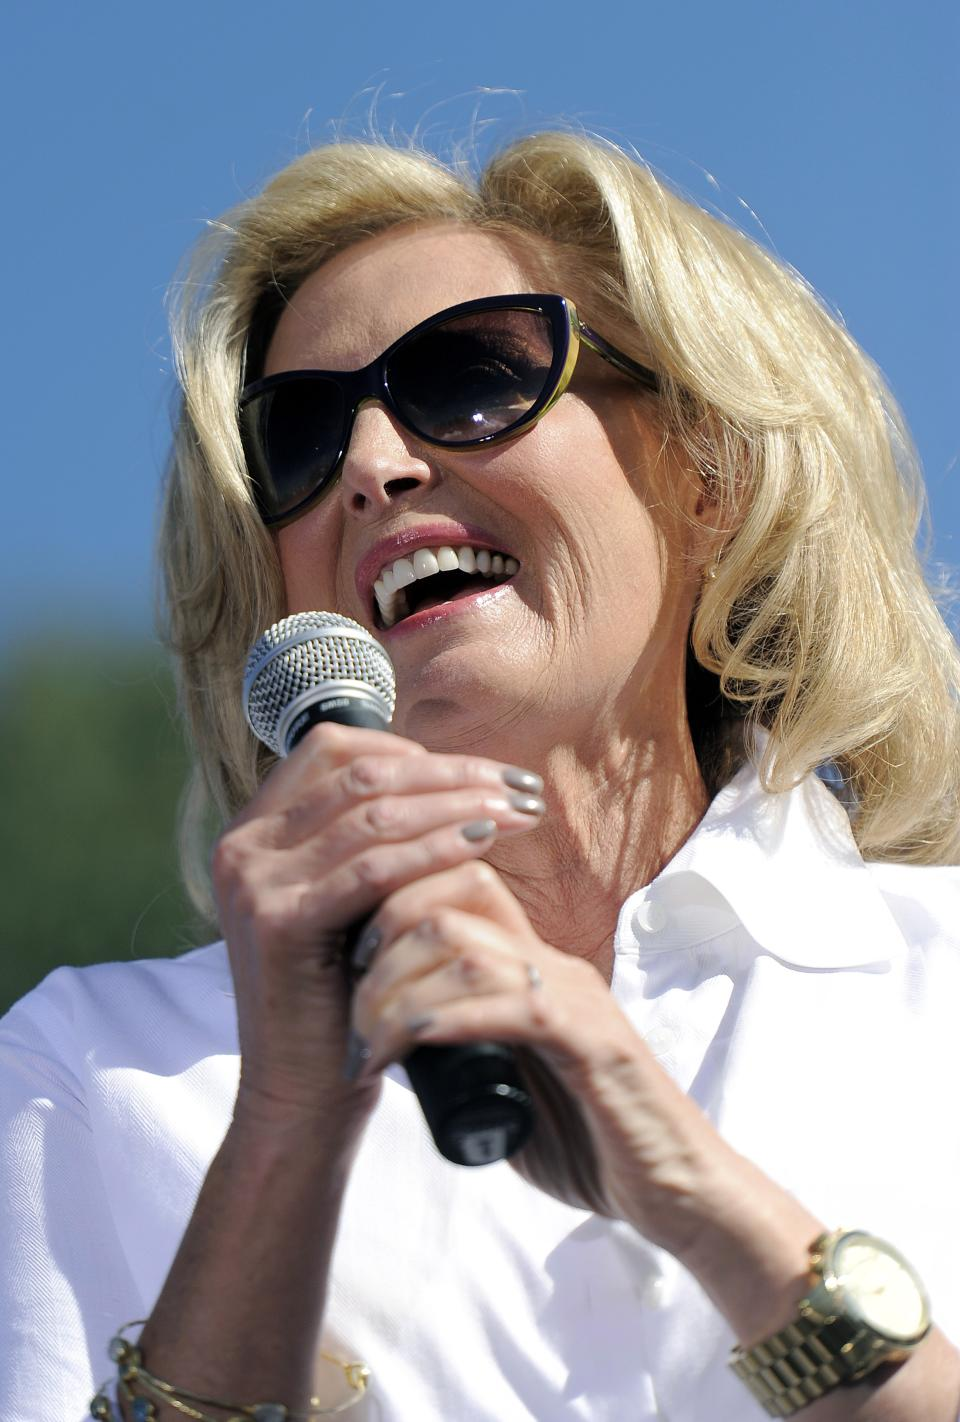 Ann Romney, wife of Republican presidential candidate Mitt Romney, speaks to supporters at a campaign event at Hudson Gardens and Event Center in Littleton, Colo., on Tuesday, Oct. 2, 2012.  (AP Photo/Chris Schneider)